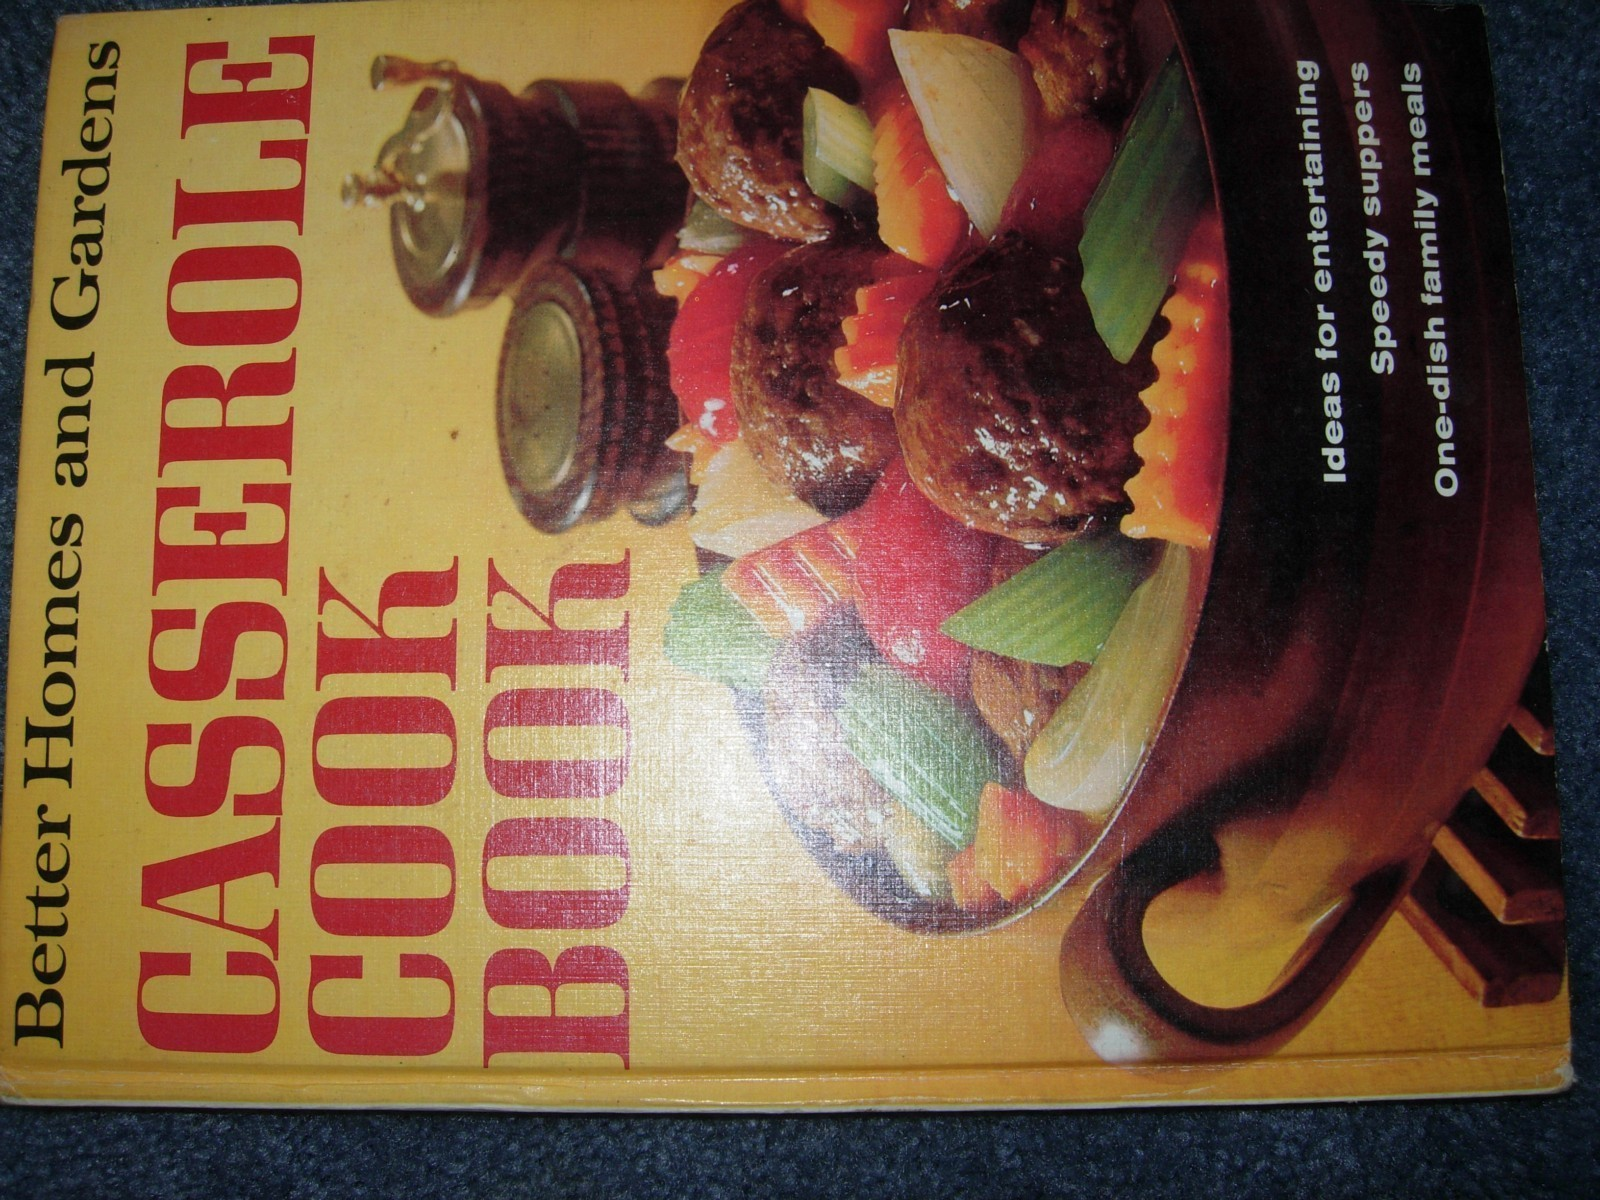 Vintage better homes and gardens casserole cook book 1968 - Better homes and gardens cookbook 1968 ...